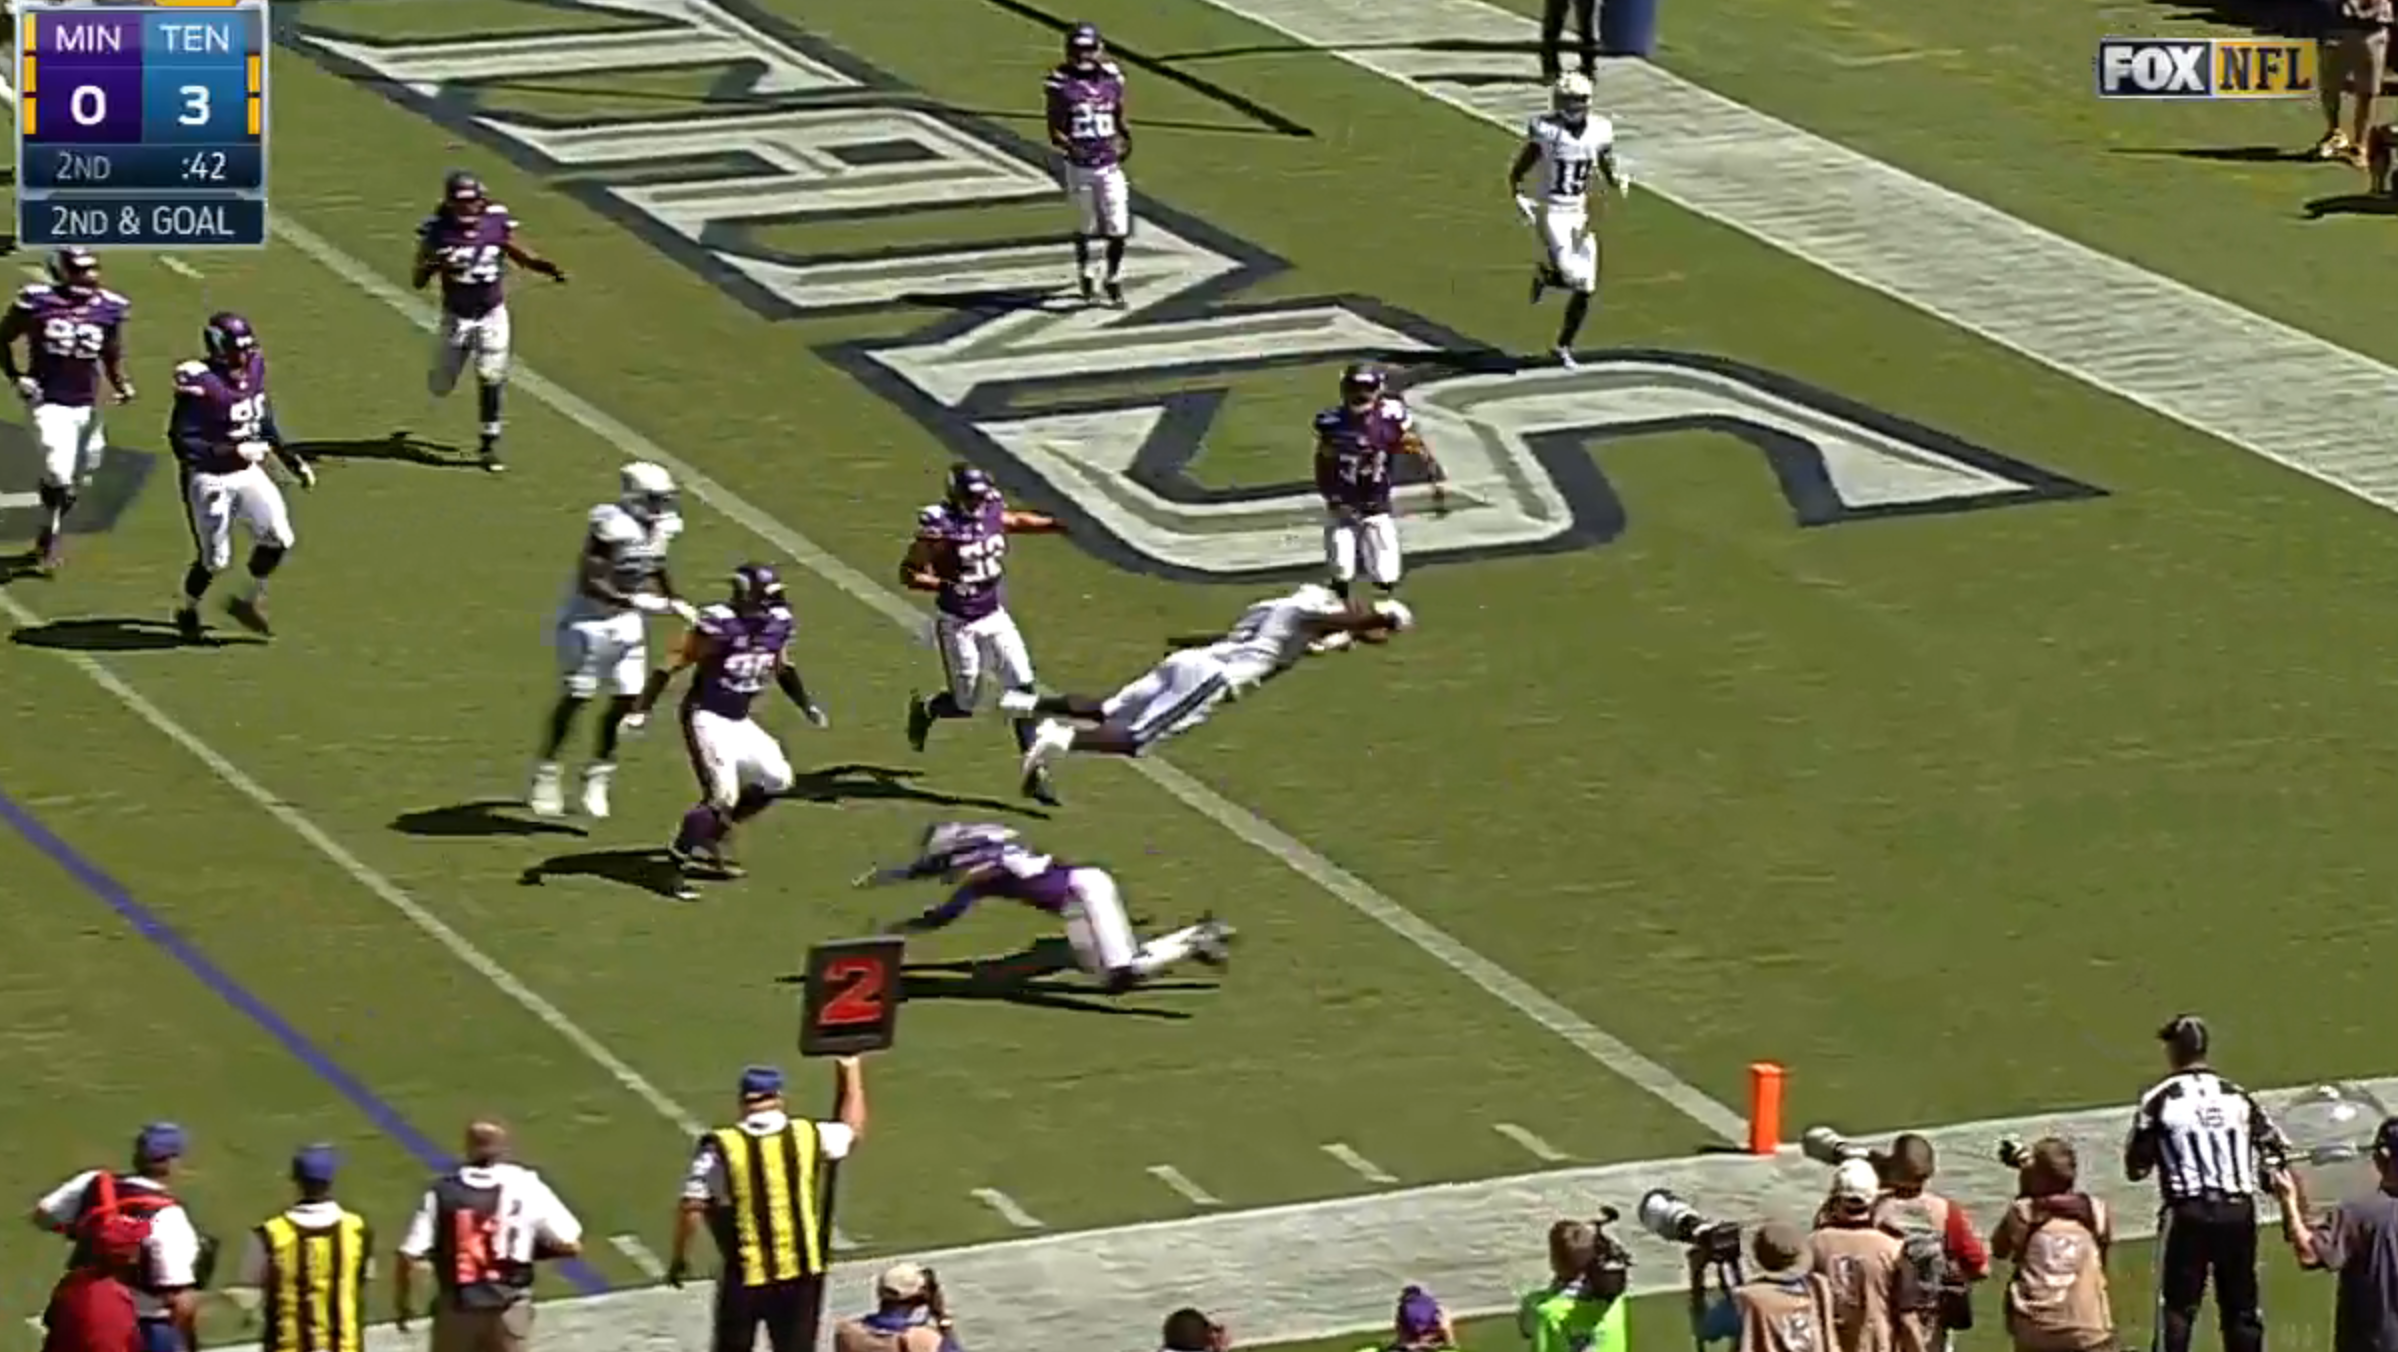 demarco-murray-plante-un-enorme-touchdown-face-aux-vikings